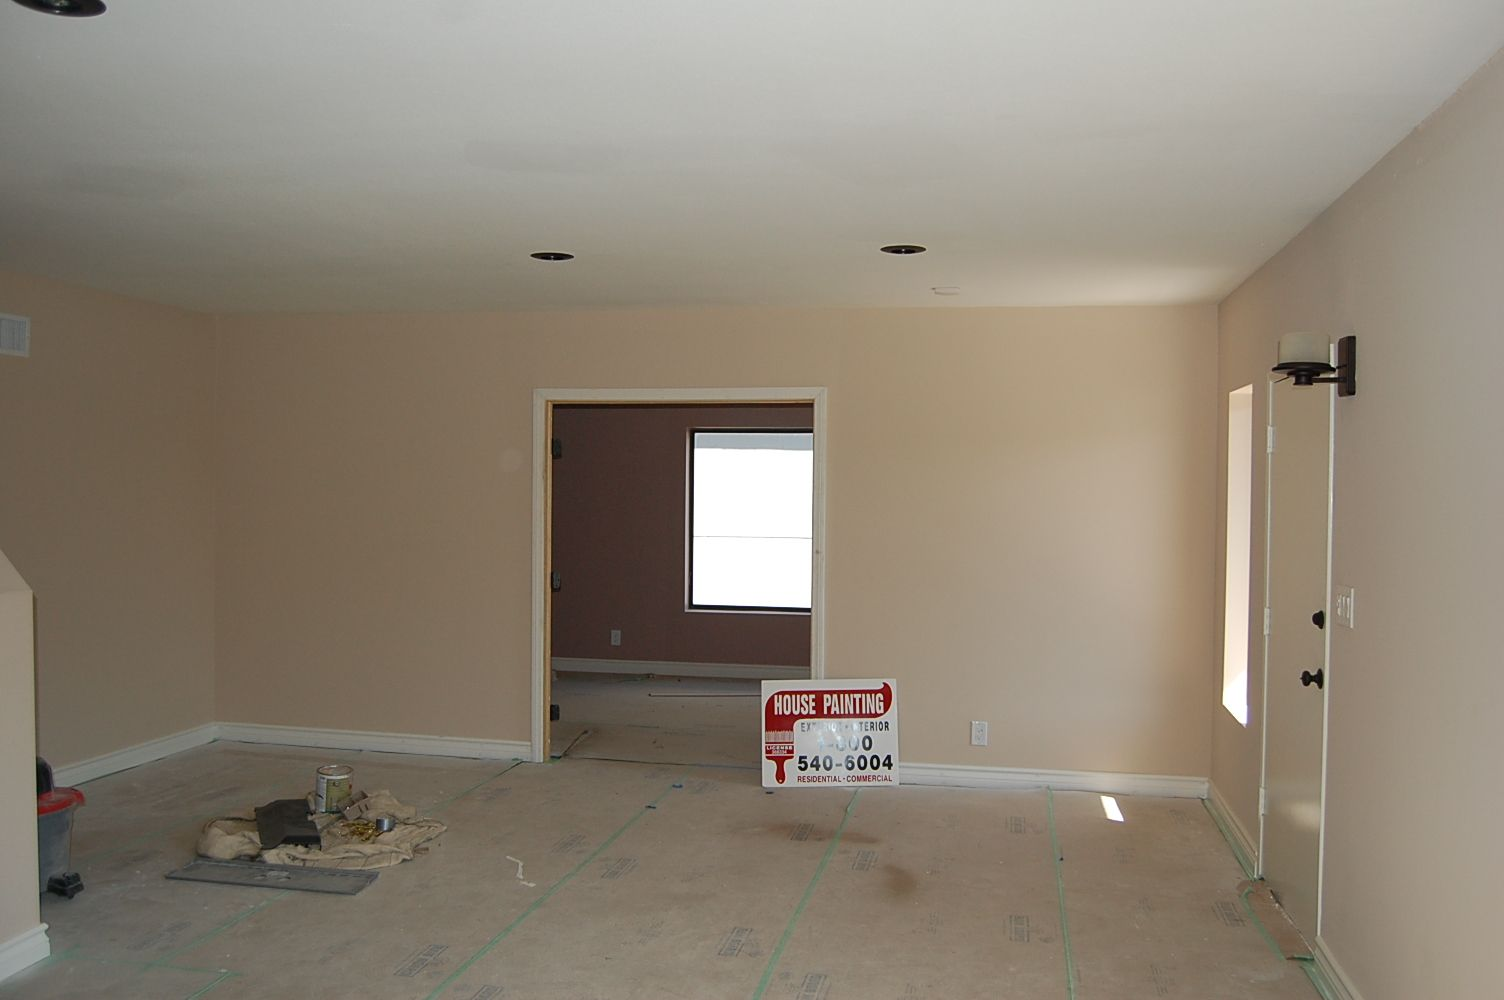 Master Bedroom Interior Painting Looking for Professional